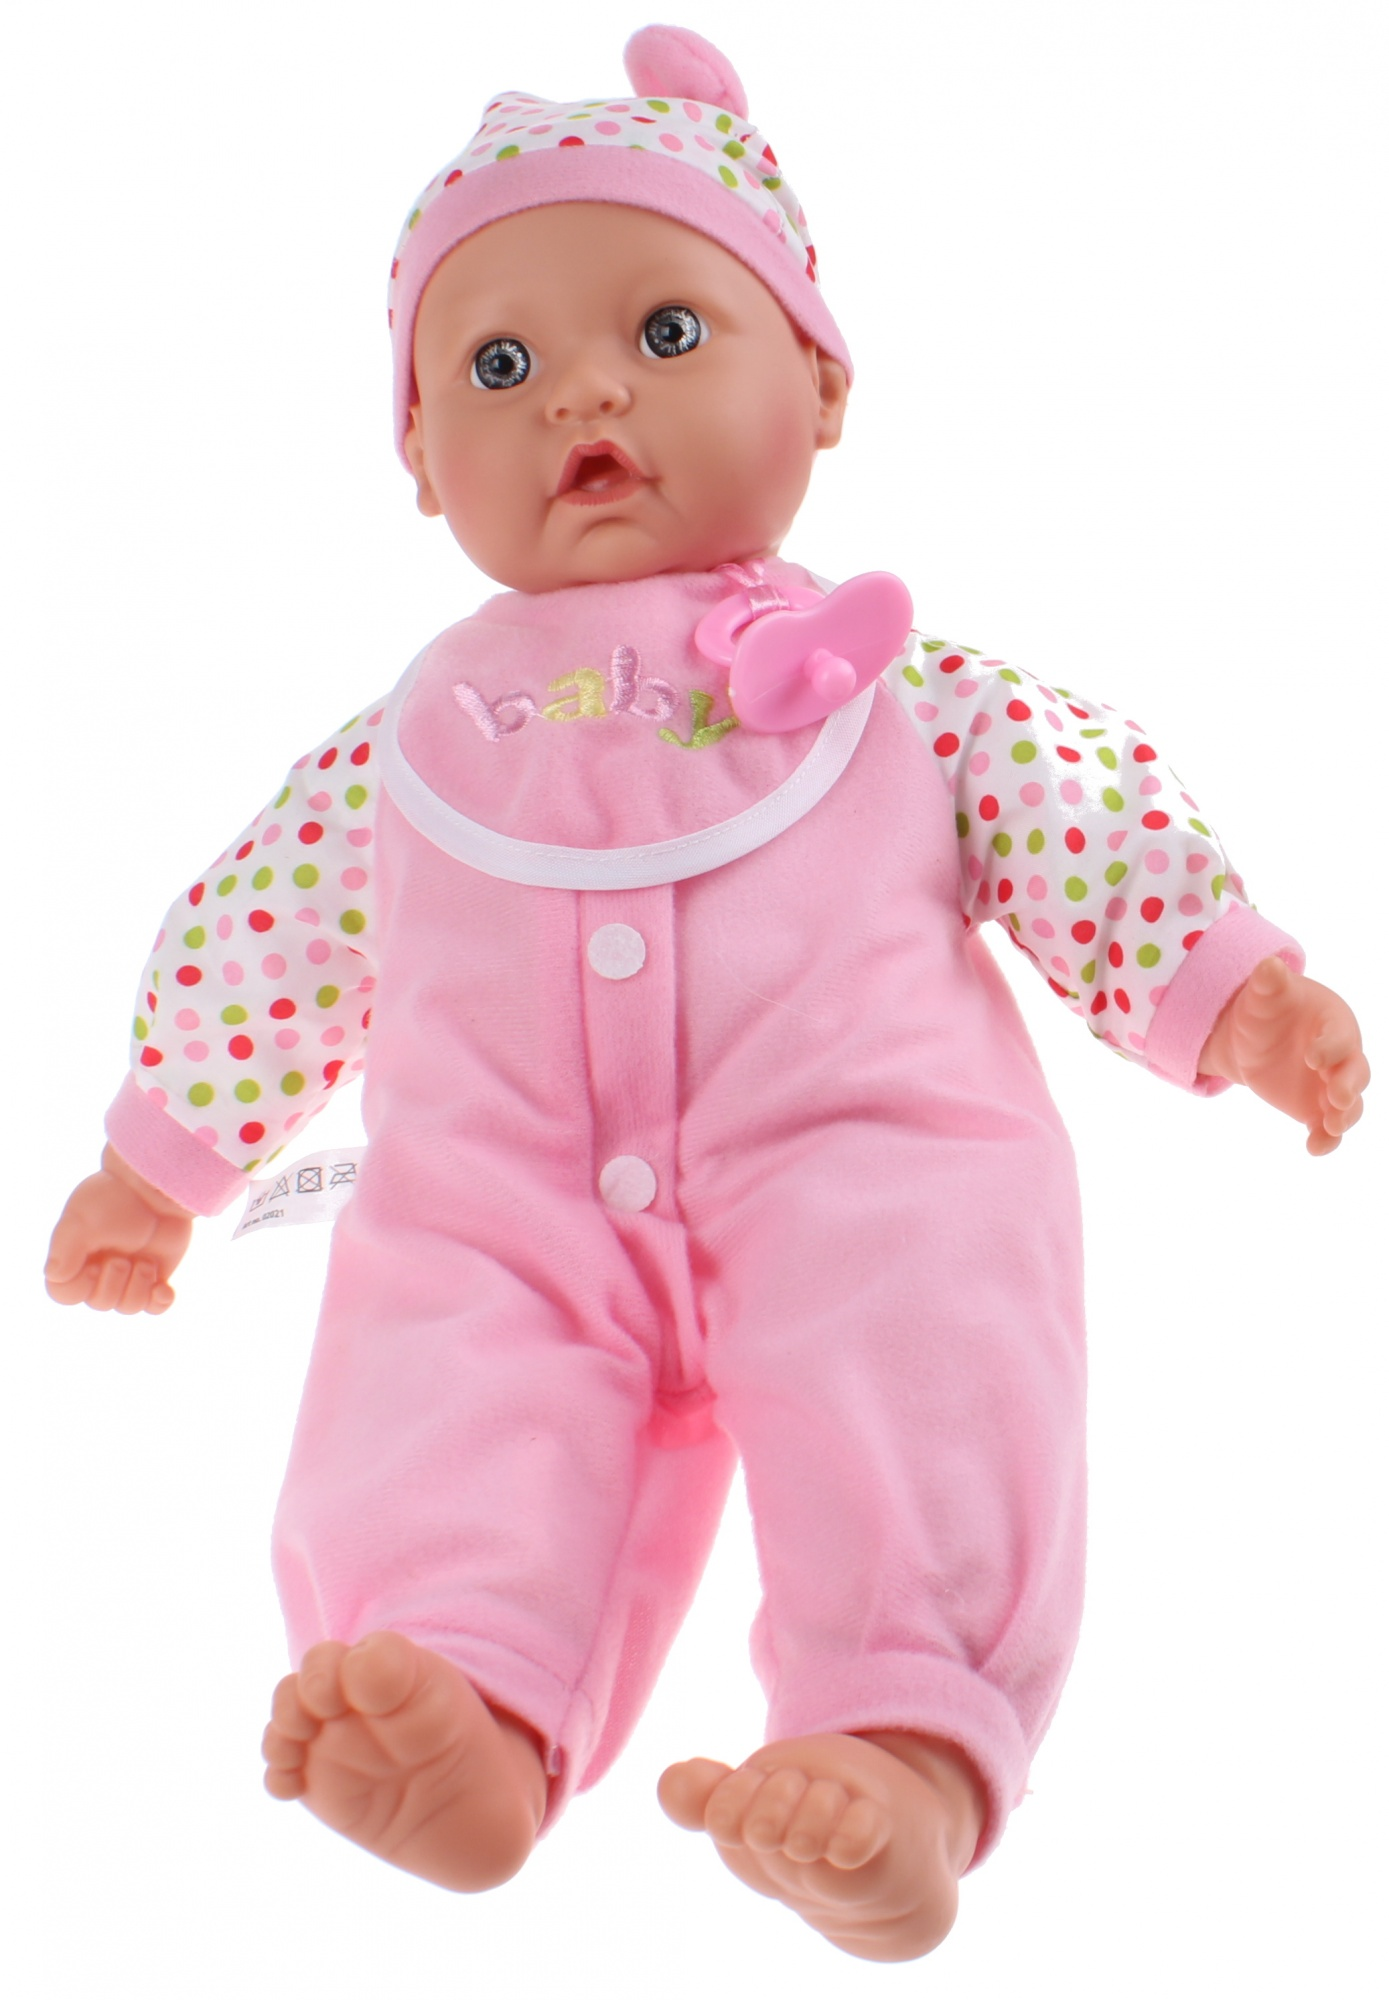 ce2bc860b52 Toi-Toys baby doll Baby Cute 40 cm pink 3-piece - Internet-Toys